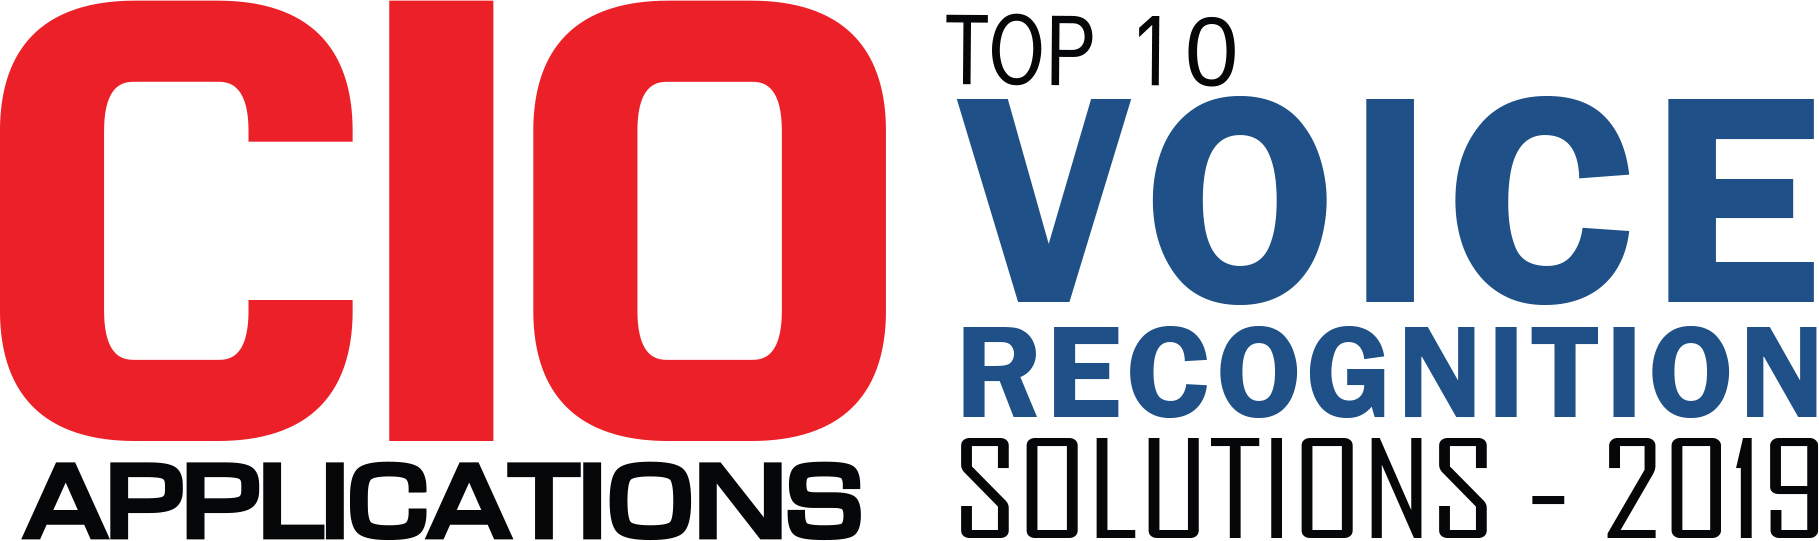 Top 10 Voice Recognition Solutions Companies - 2019